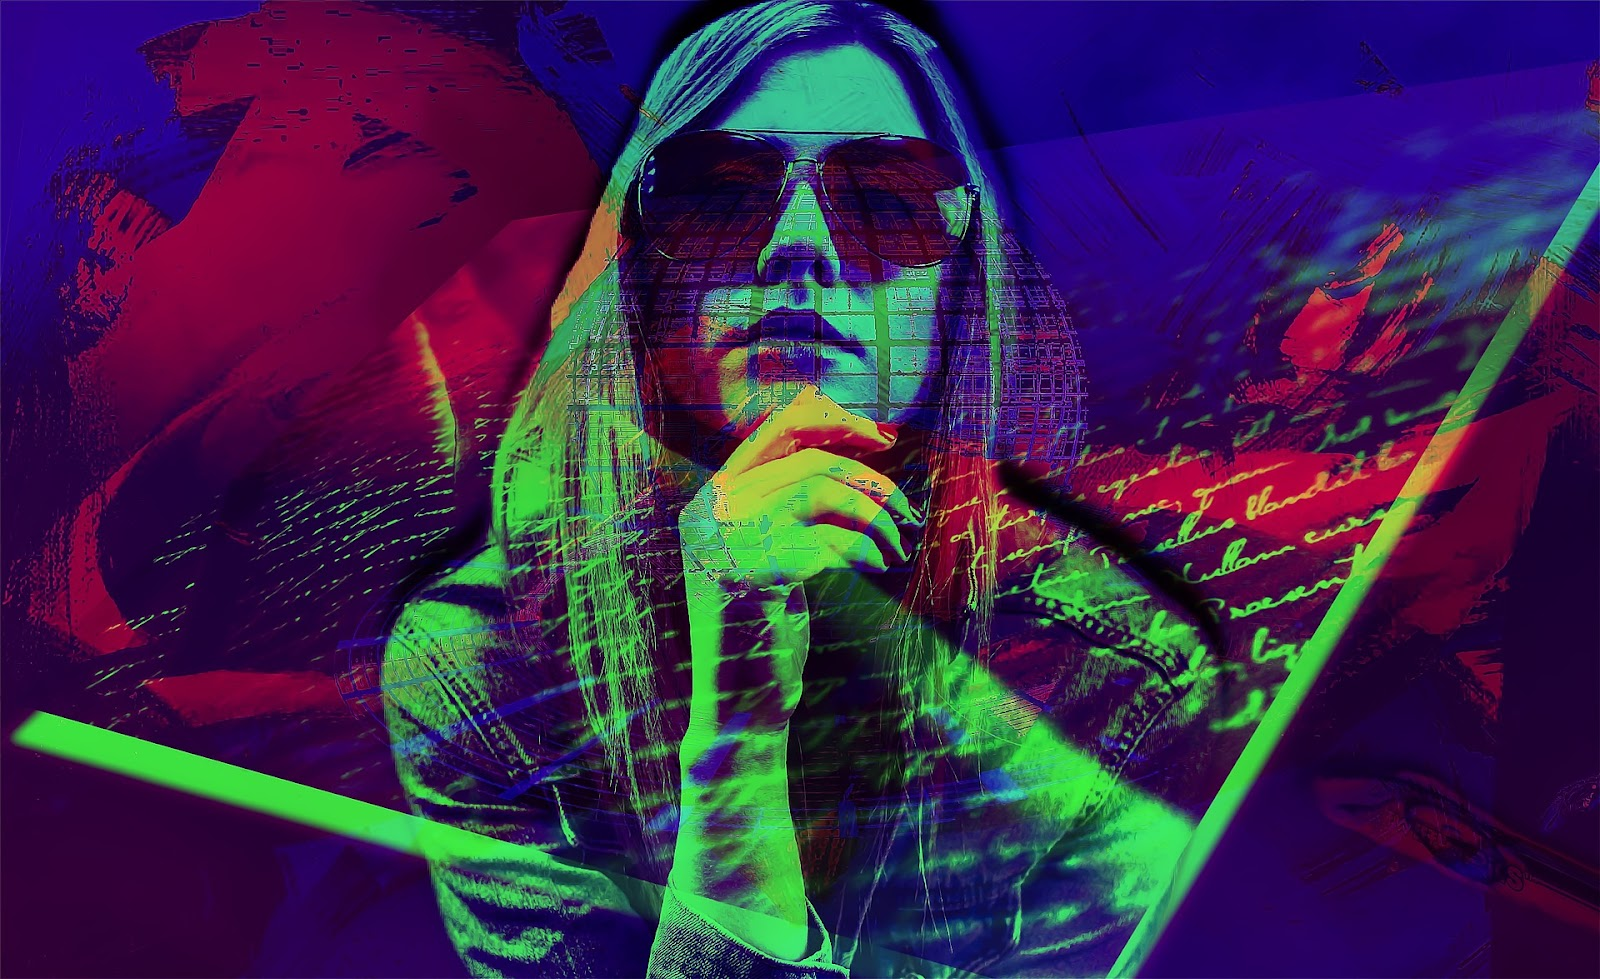 Popart mixed media art of a woman wearing sunglasses.